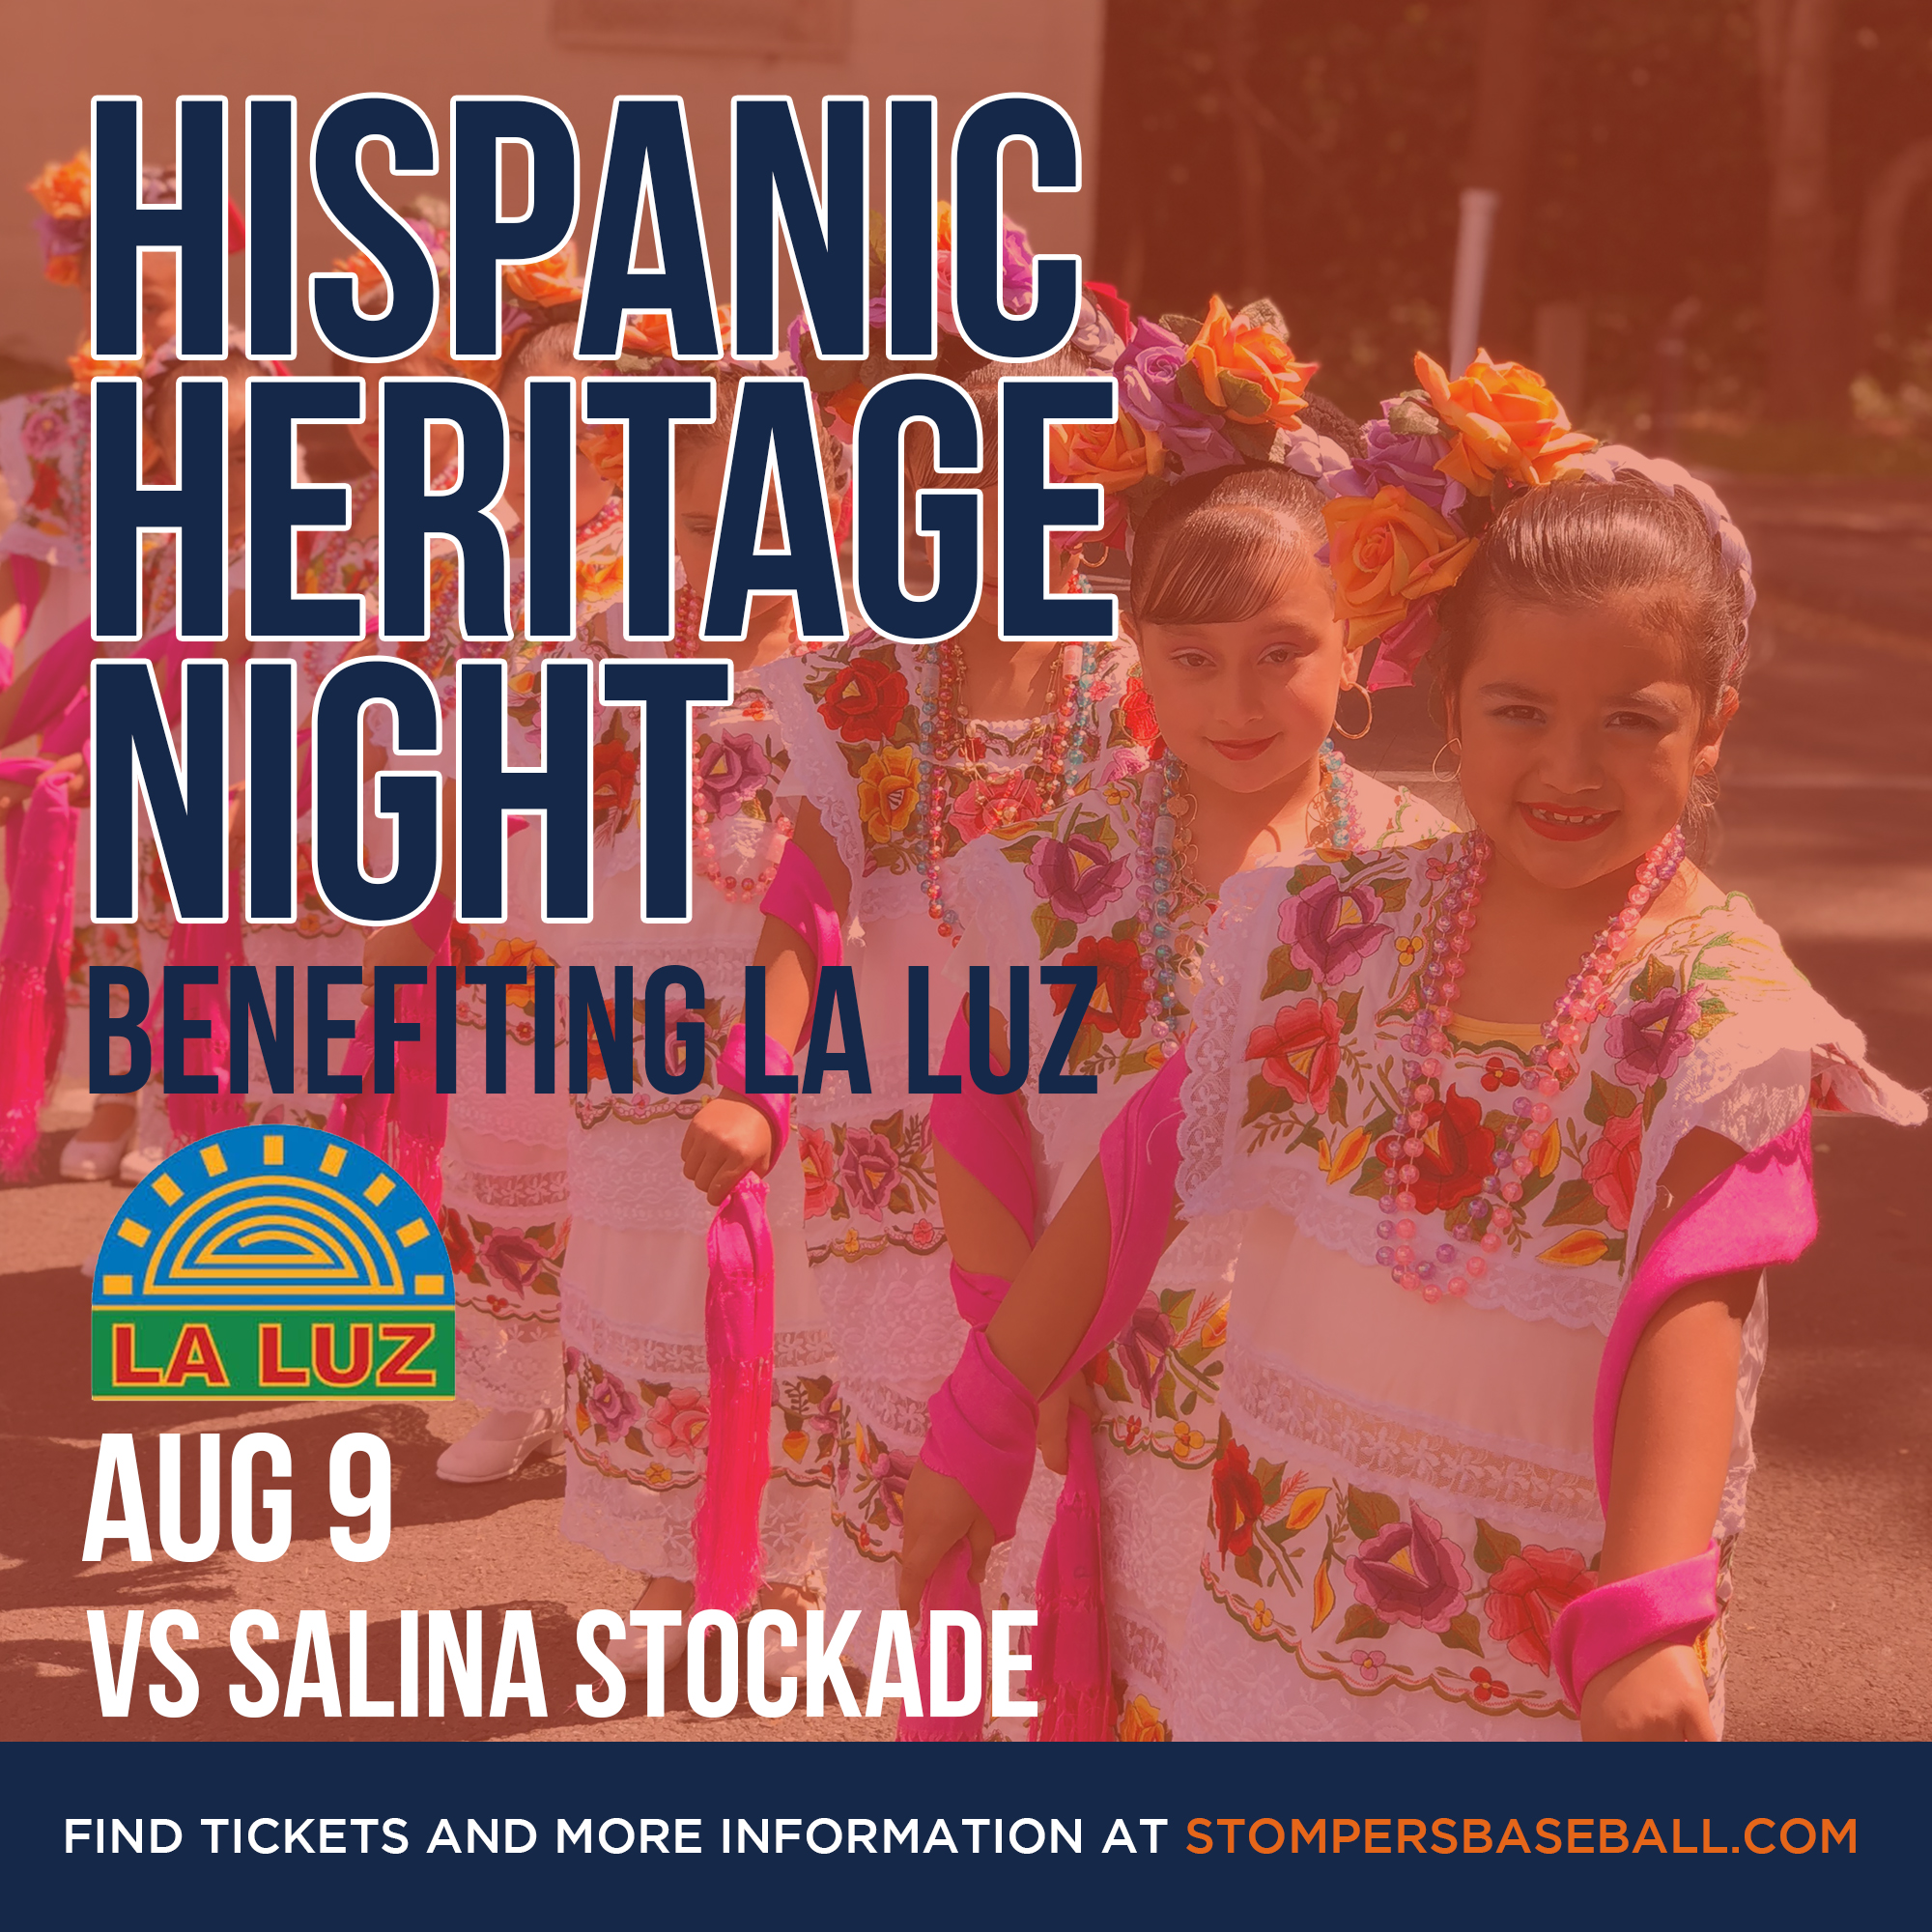 Aug 9: Hispanic Heritage Night - Come out to Palooza Park at Arnold Field for Hispanic Heritage Night and watch Baile Folklorico perform.